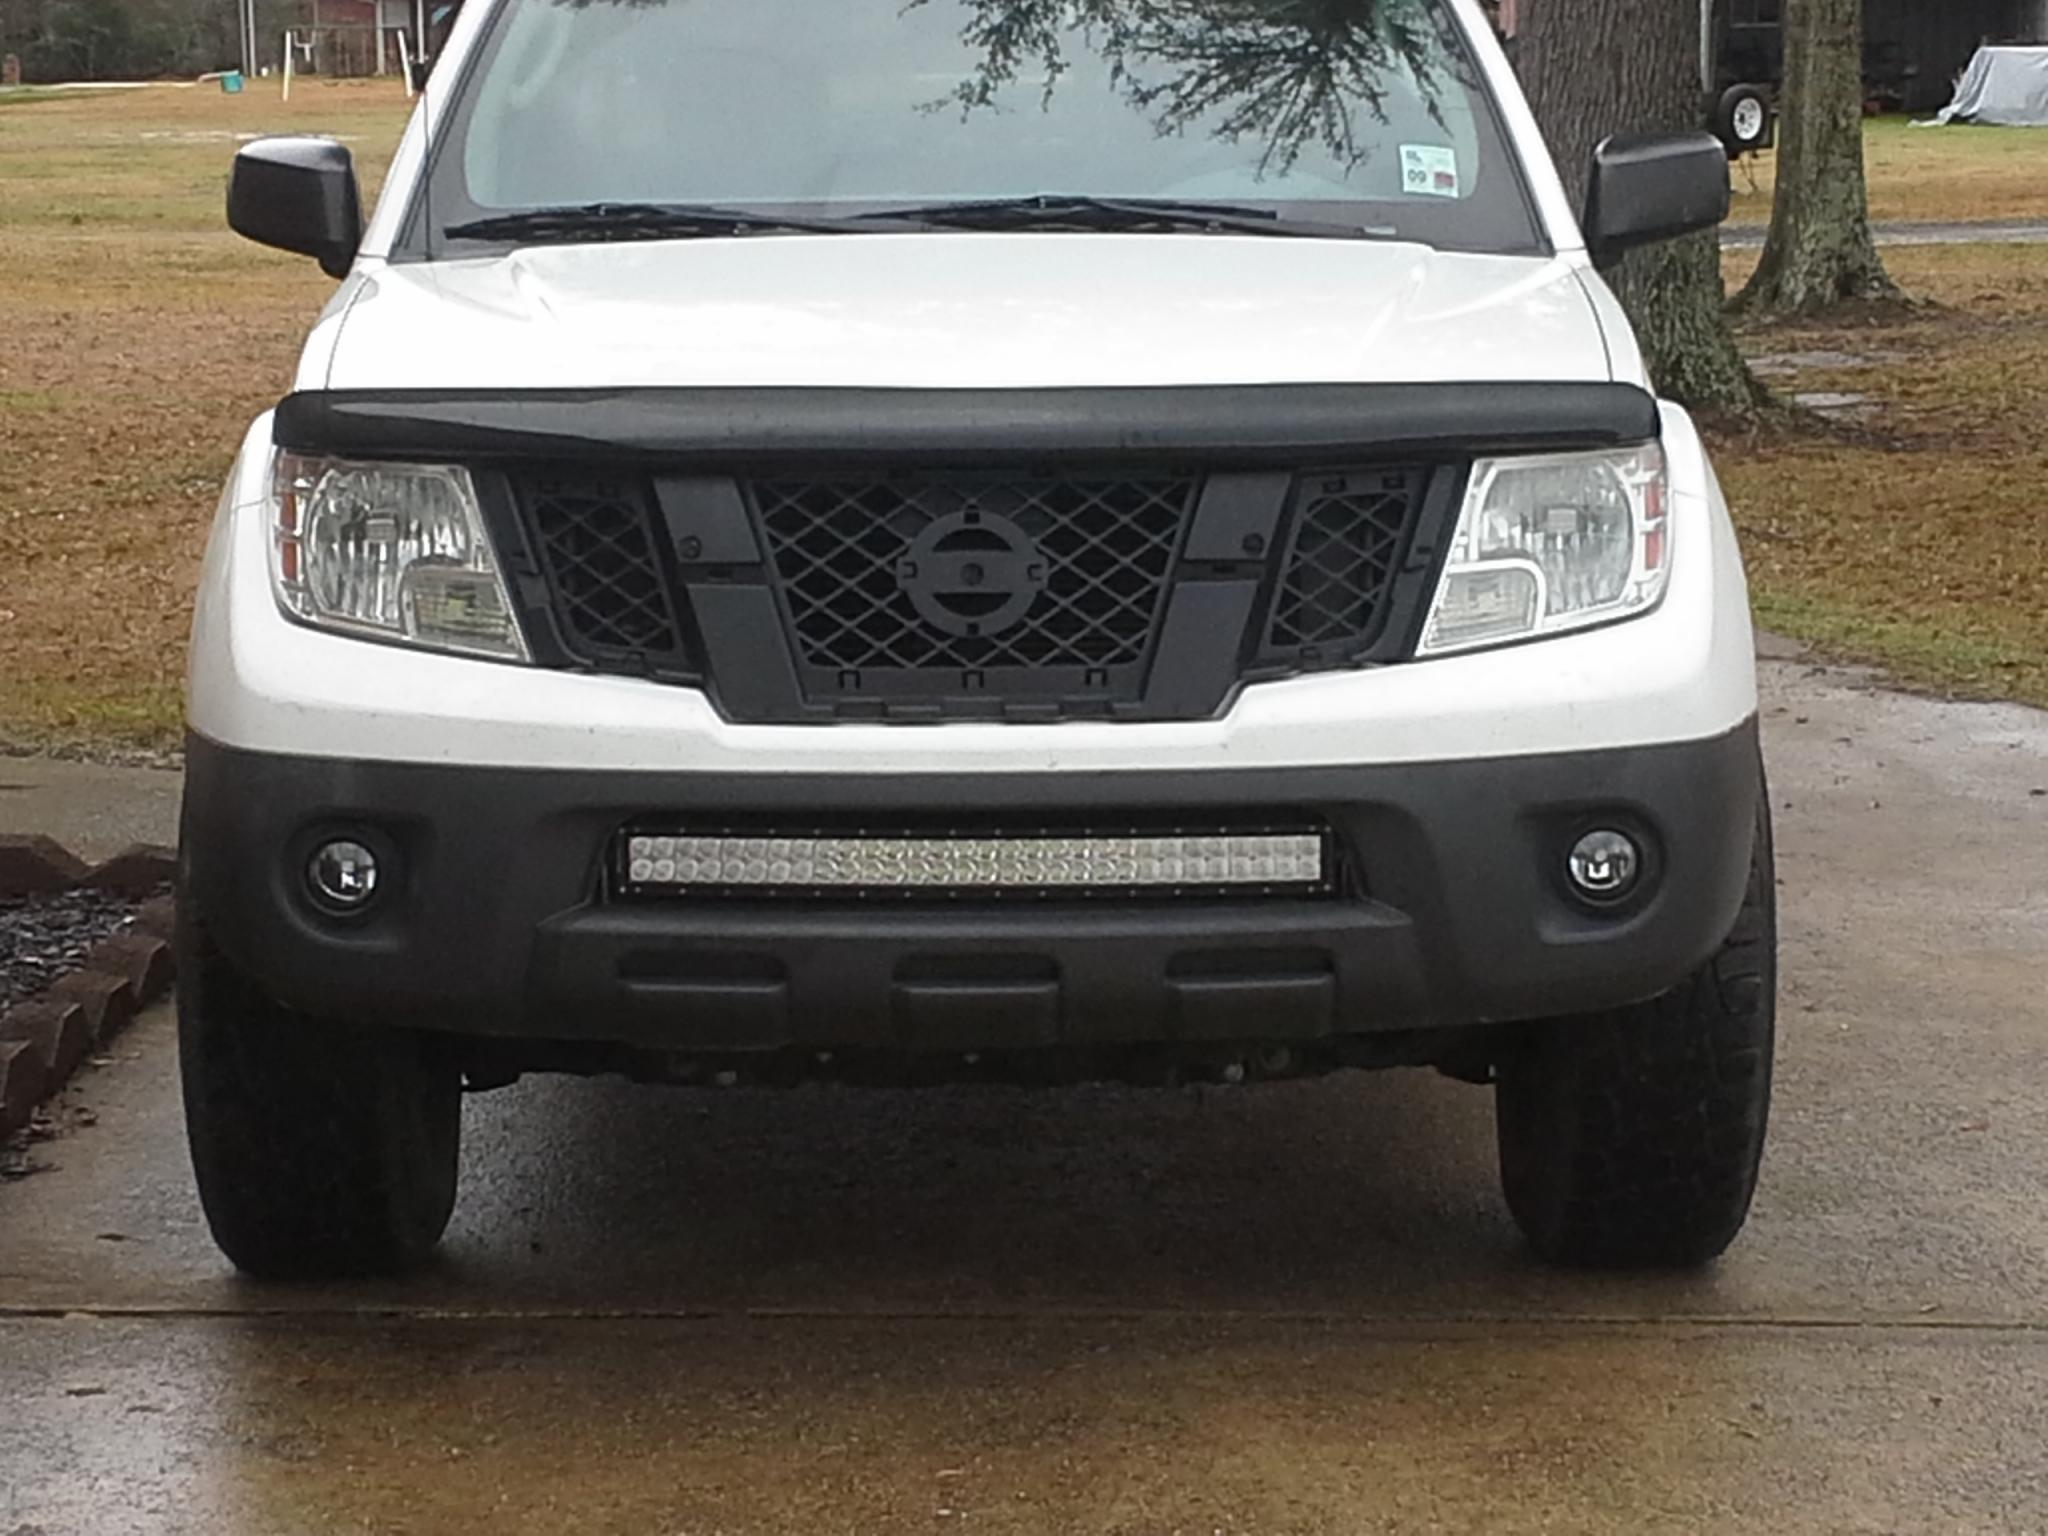 Super bright led light bar nissan frontier forum click image for larger version name front led barg views 3559 size aloadofball Choice Image